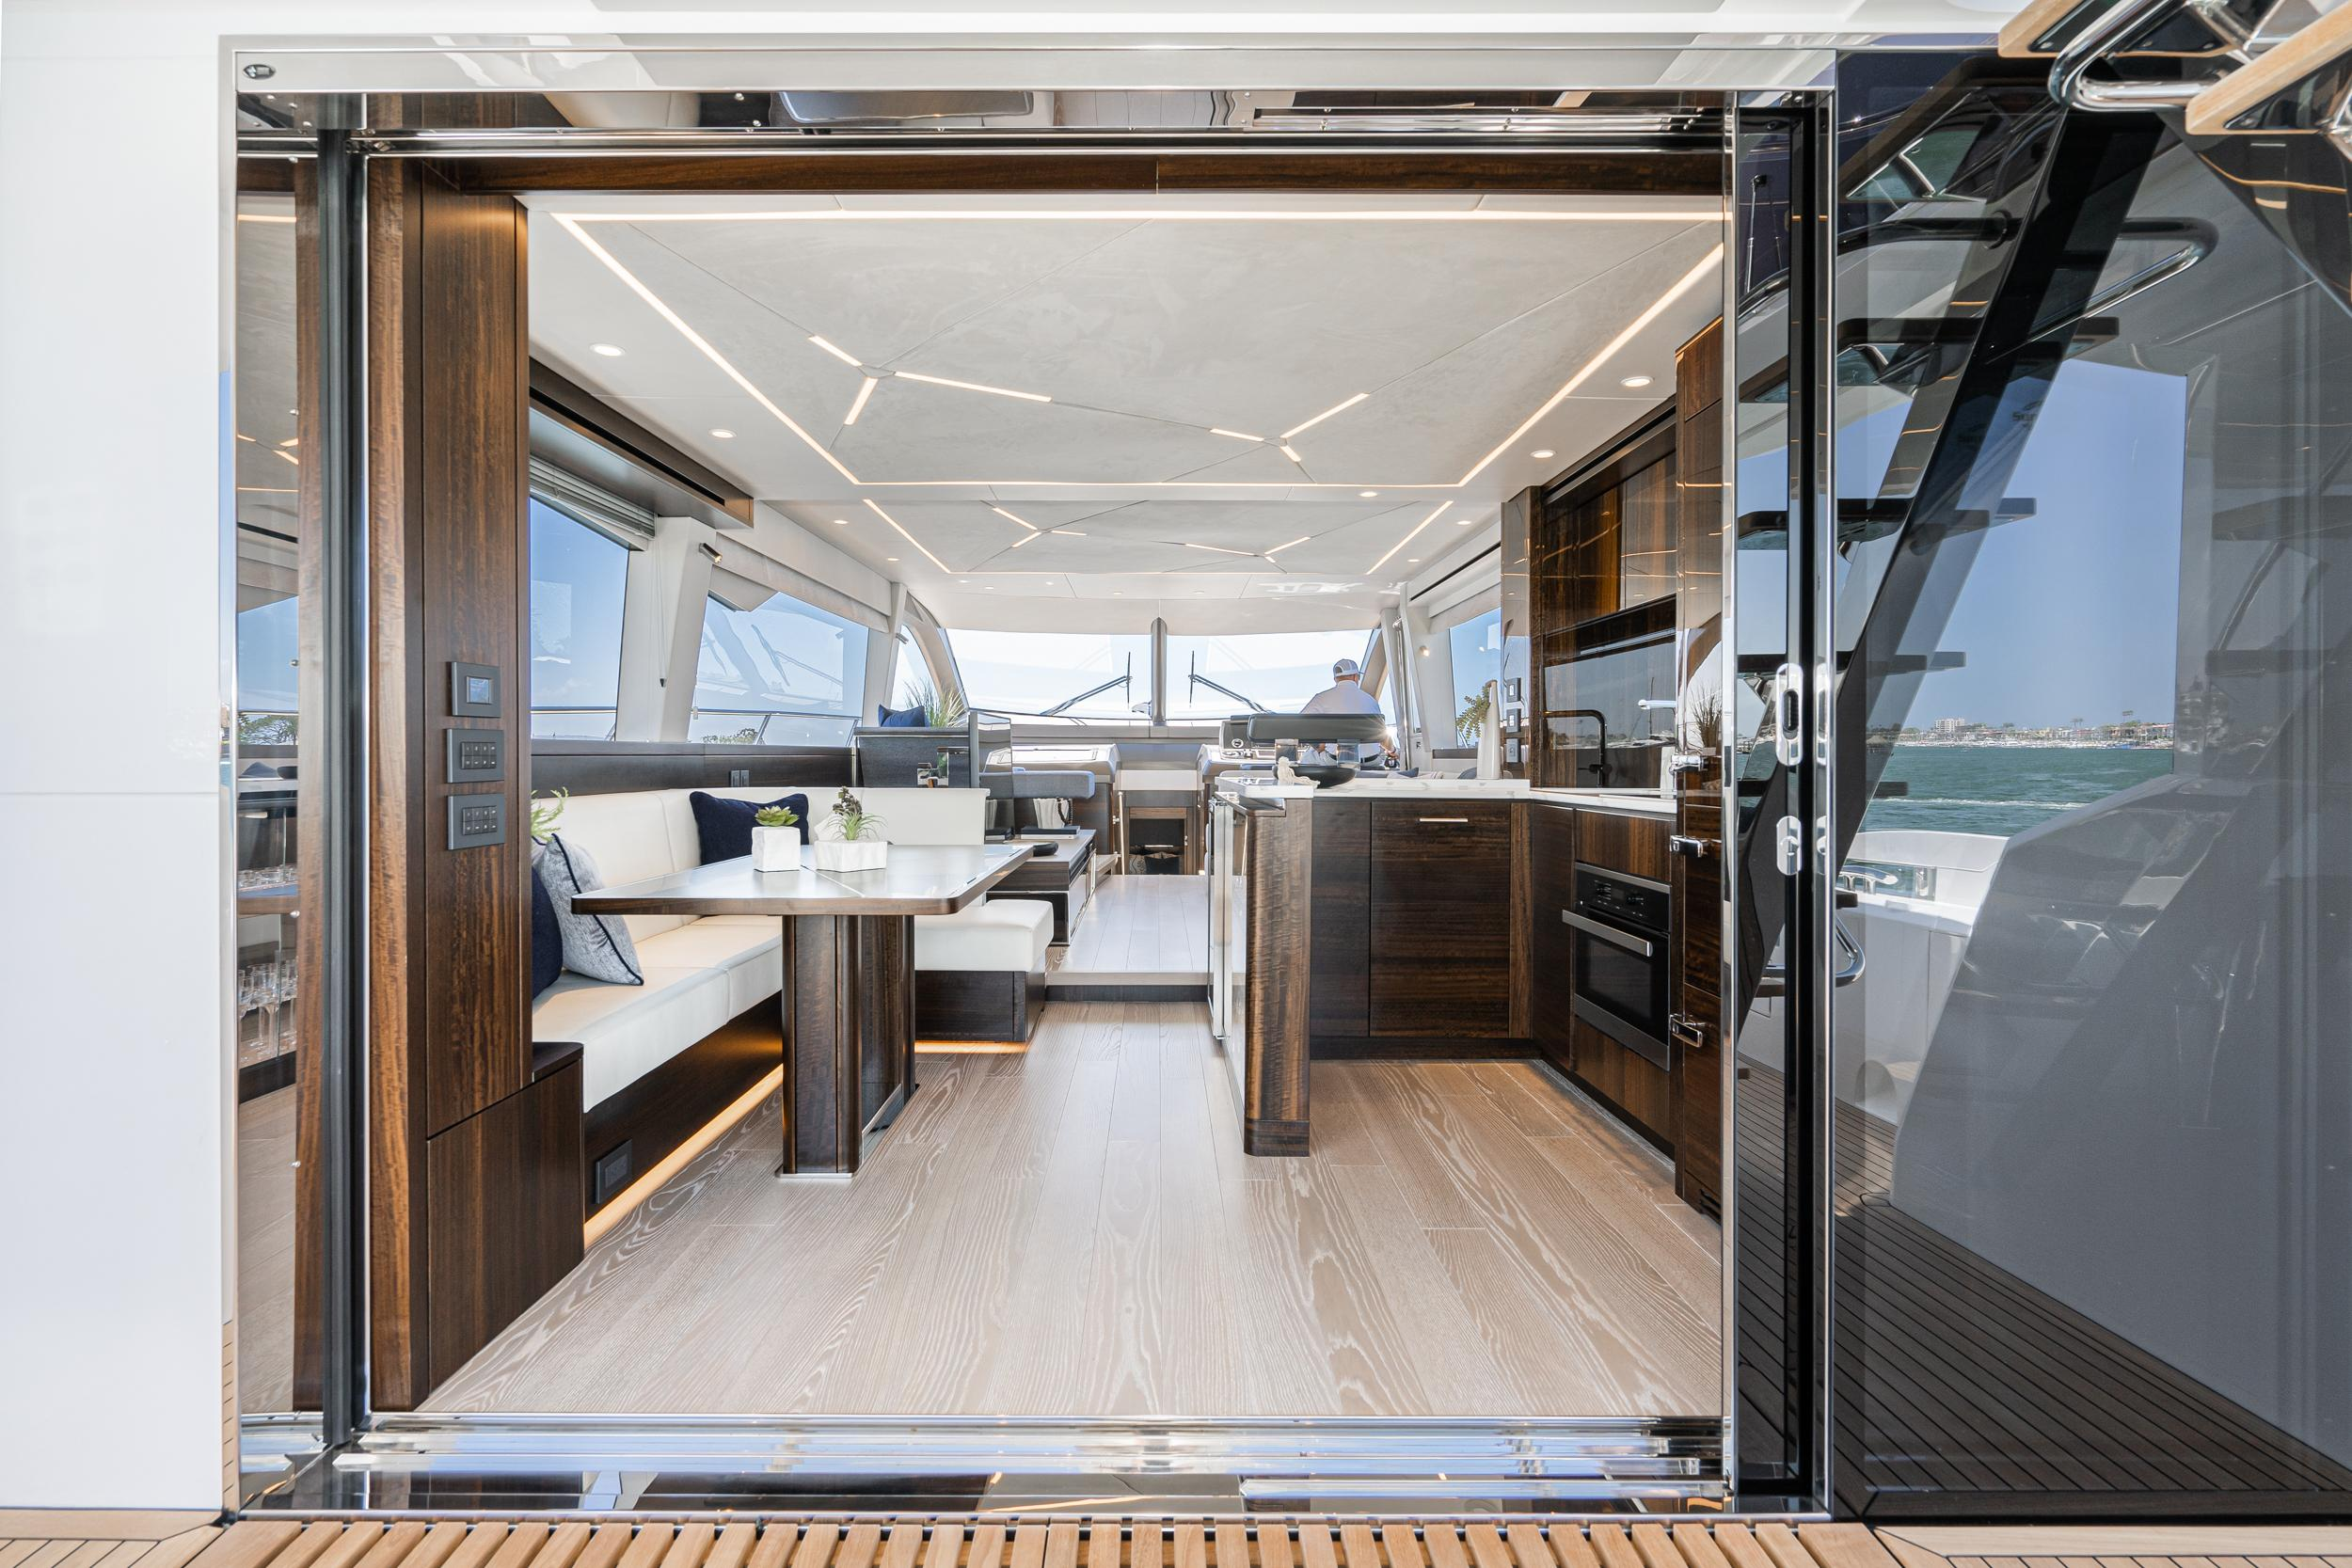 2021 Sunseeker Manhattan 68 #SS620 inventory image at Sun Country Yachts in Newport Beach